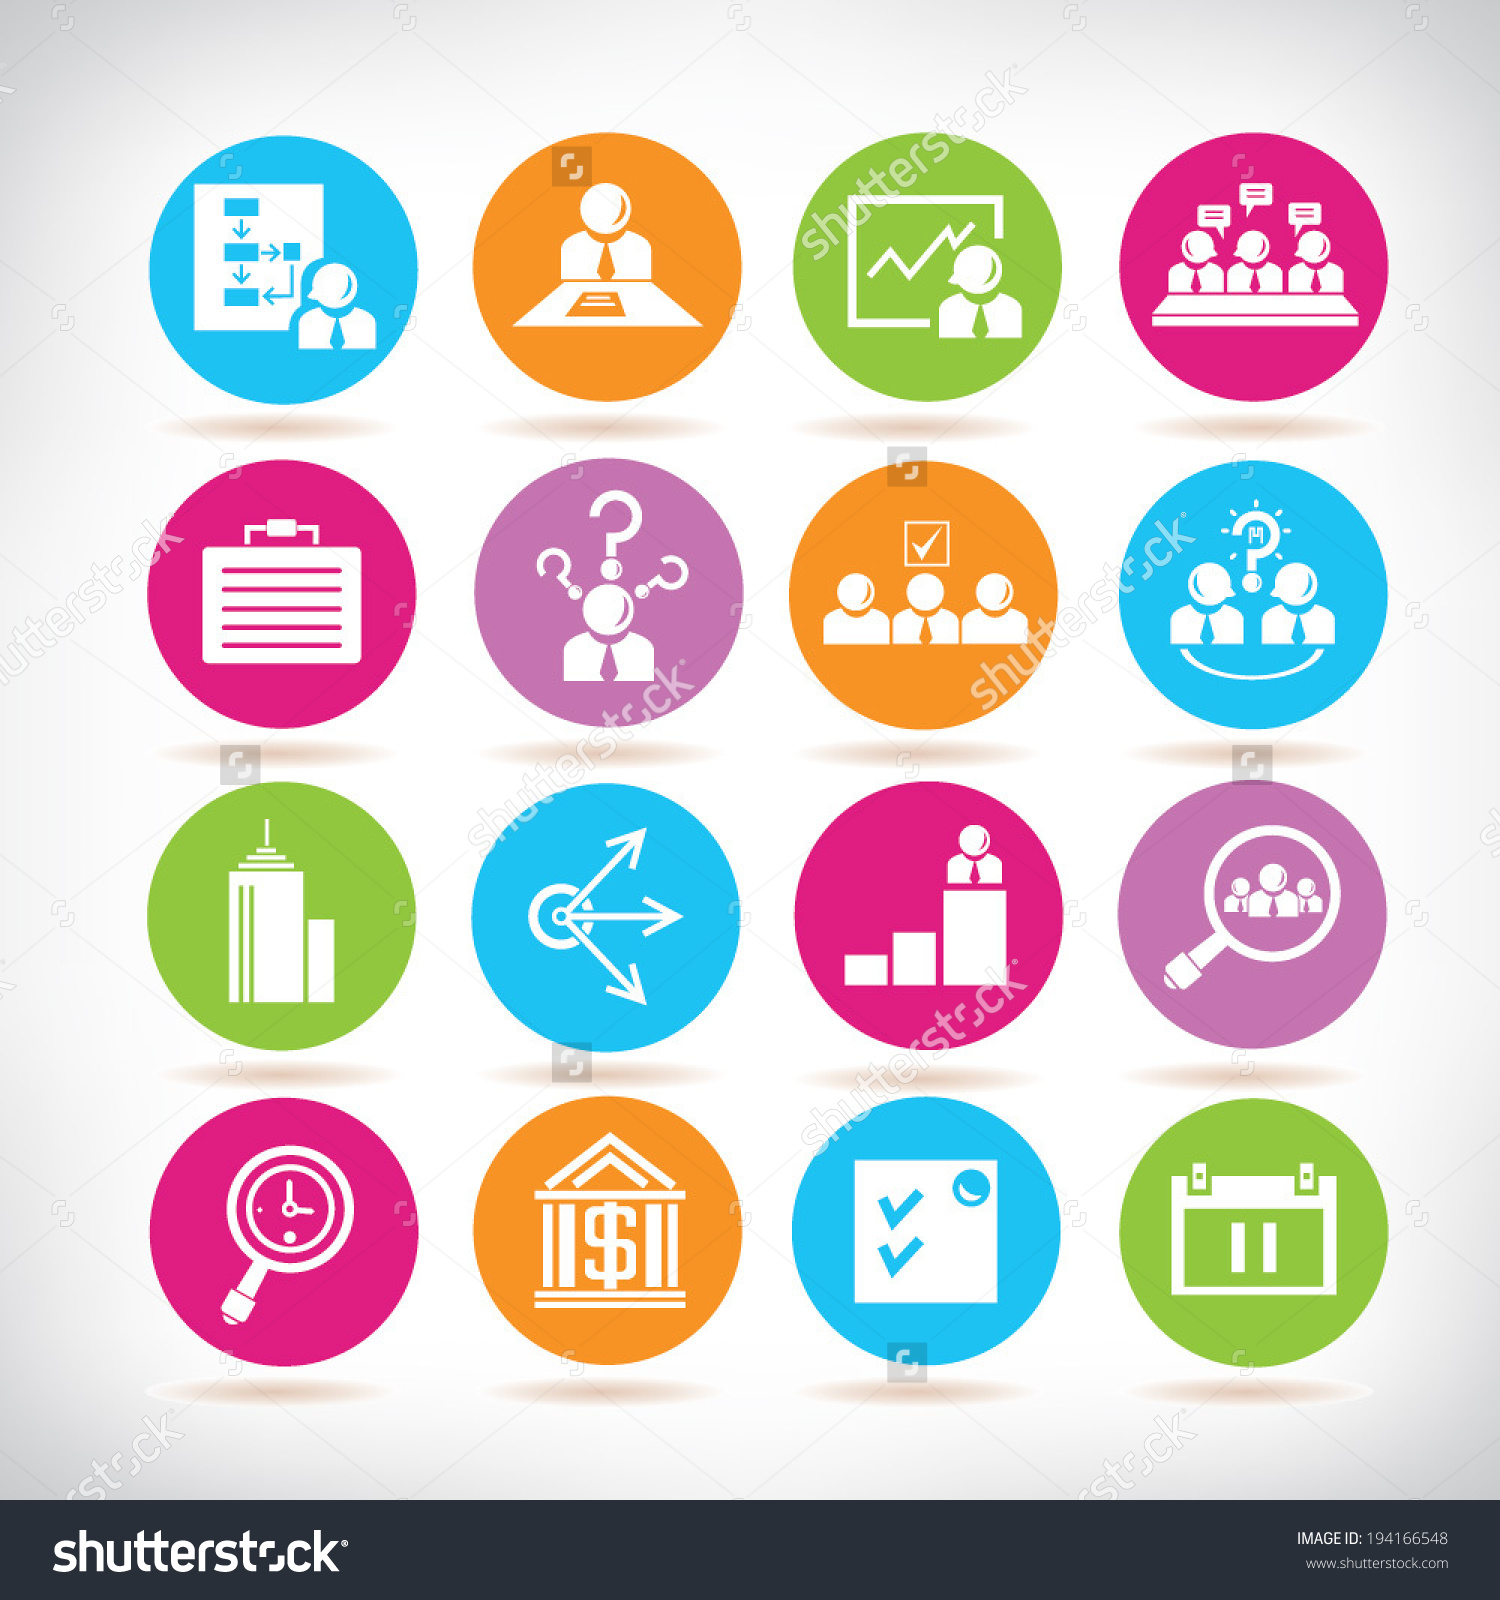 Business Development Icons Business Management Icons Stock Vector.